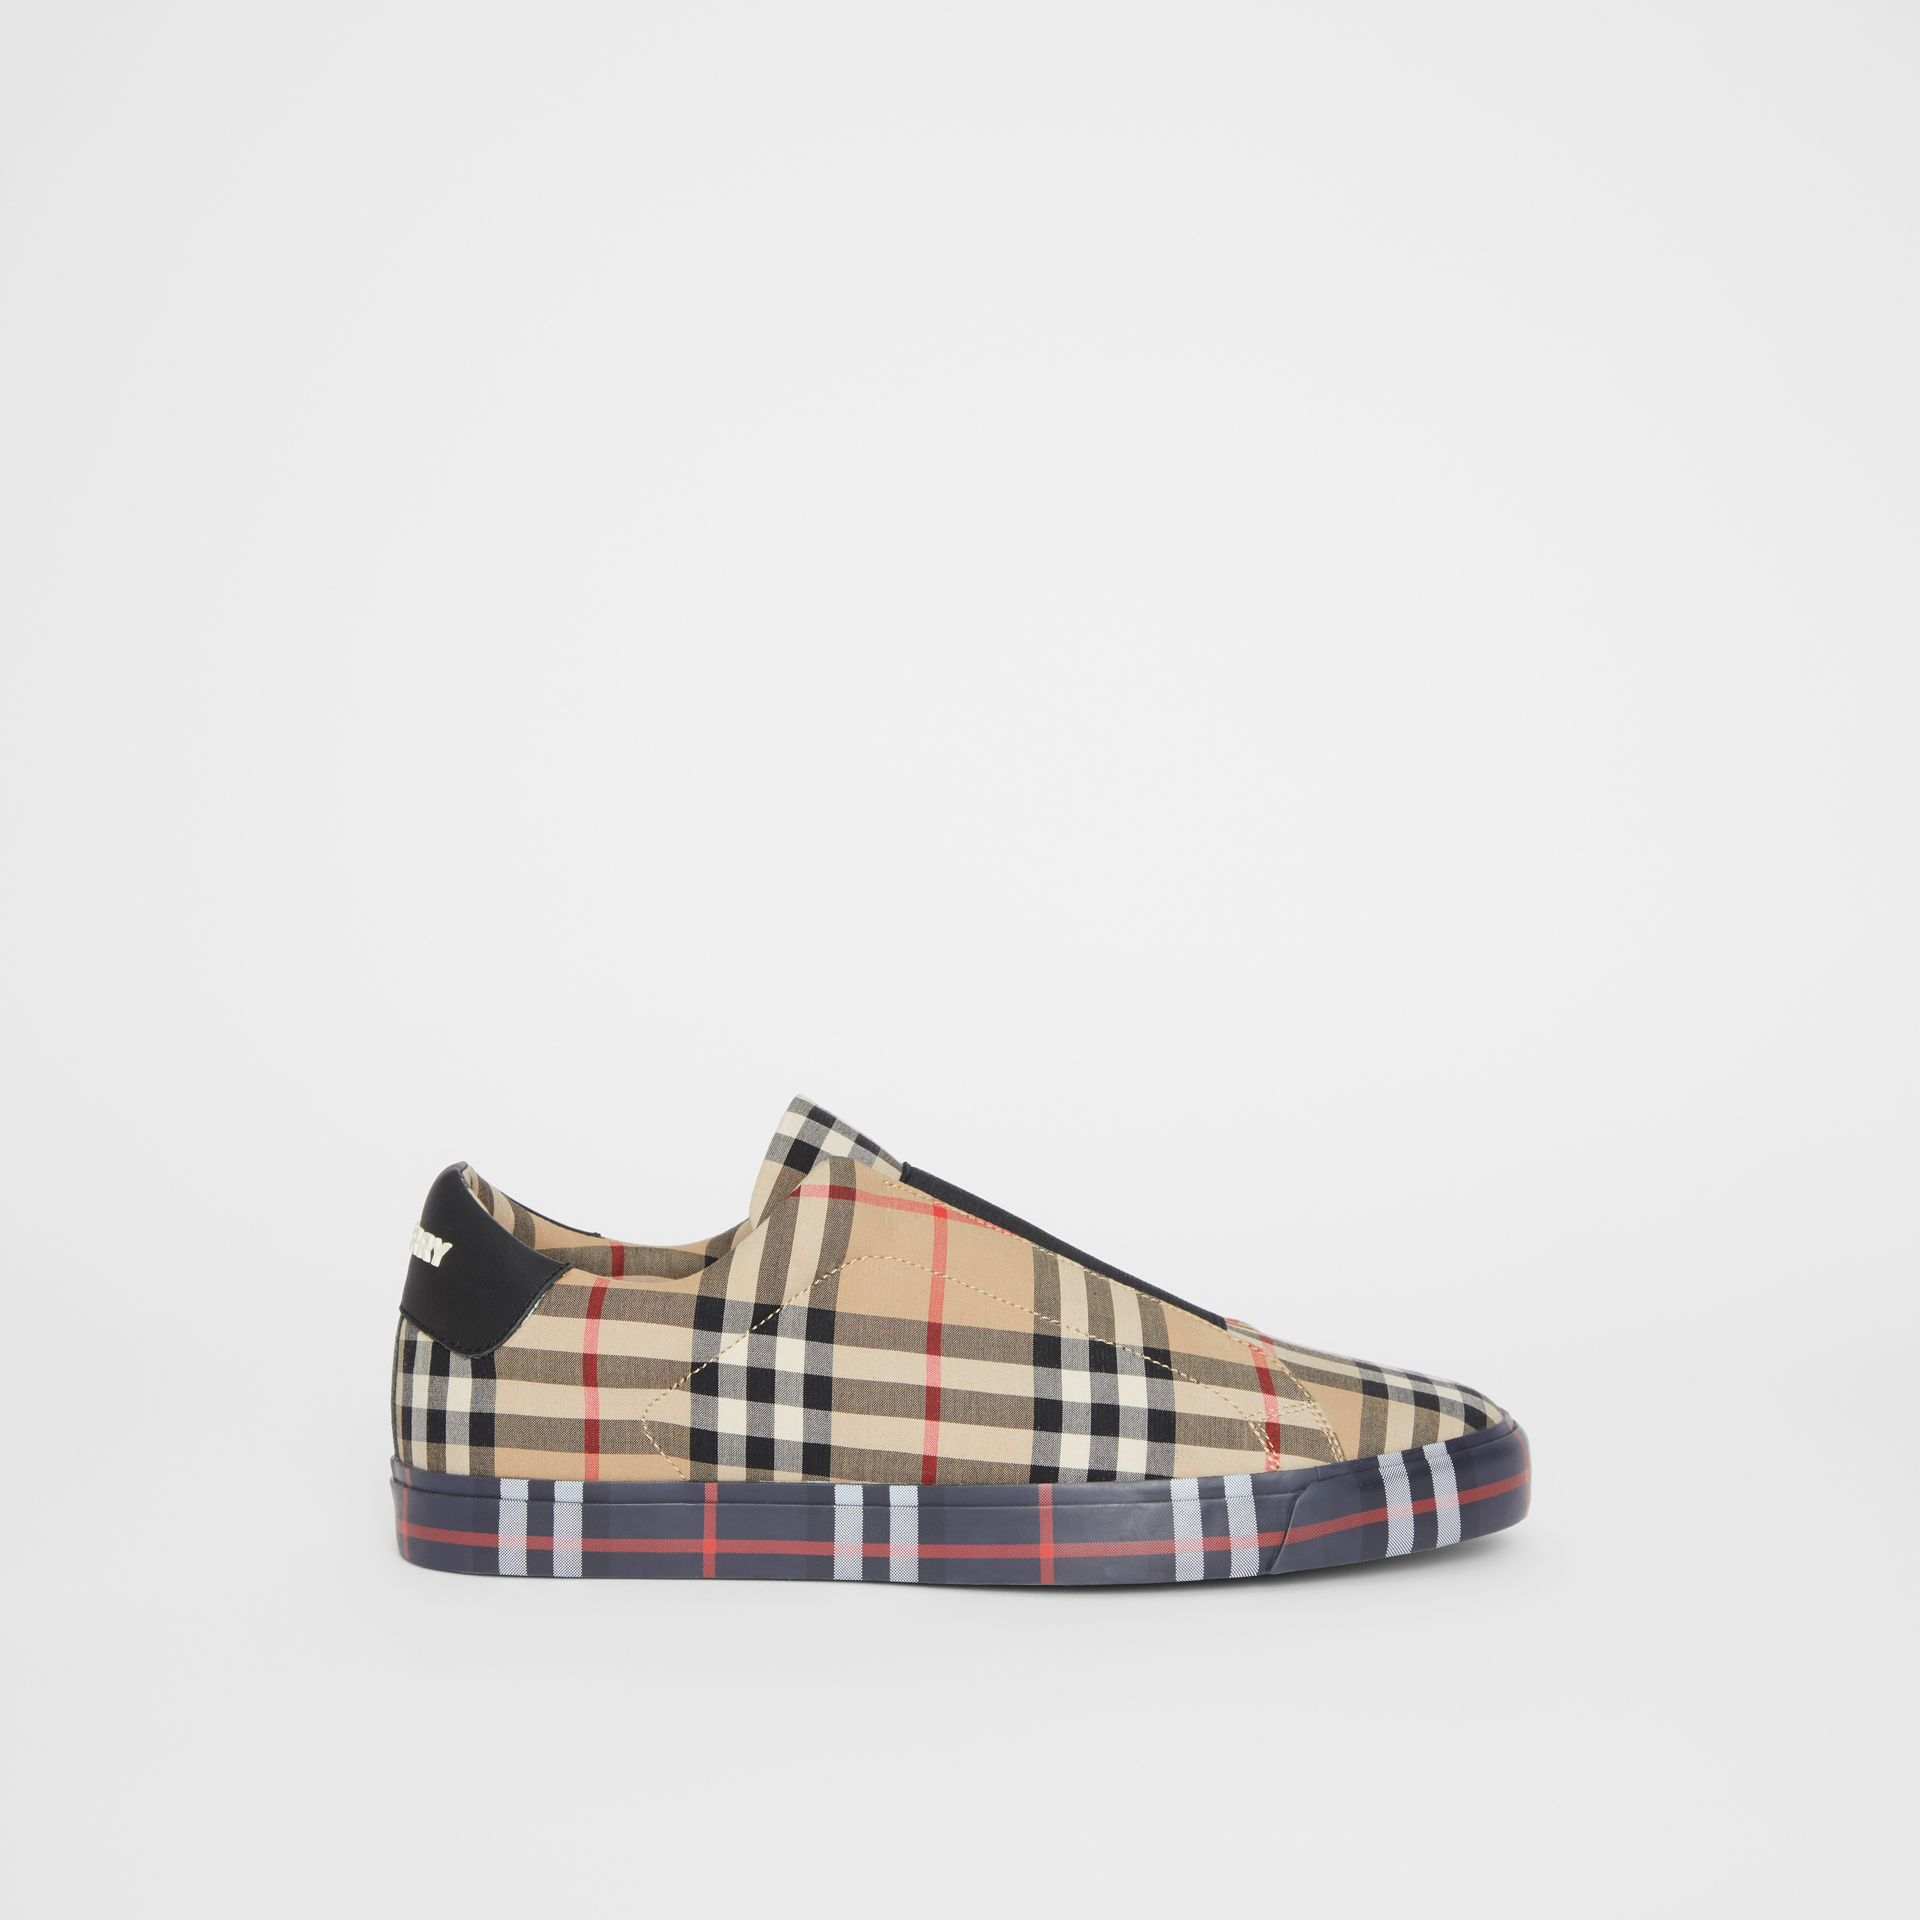 Contrast Check and Leather Slip-on Sneakers in Archive Beige - Men | Burberry Canada - gallery image 4